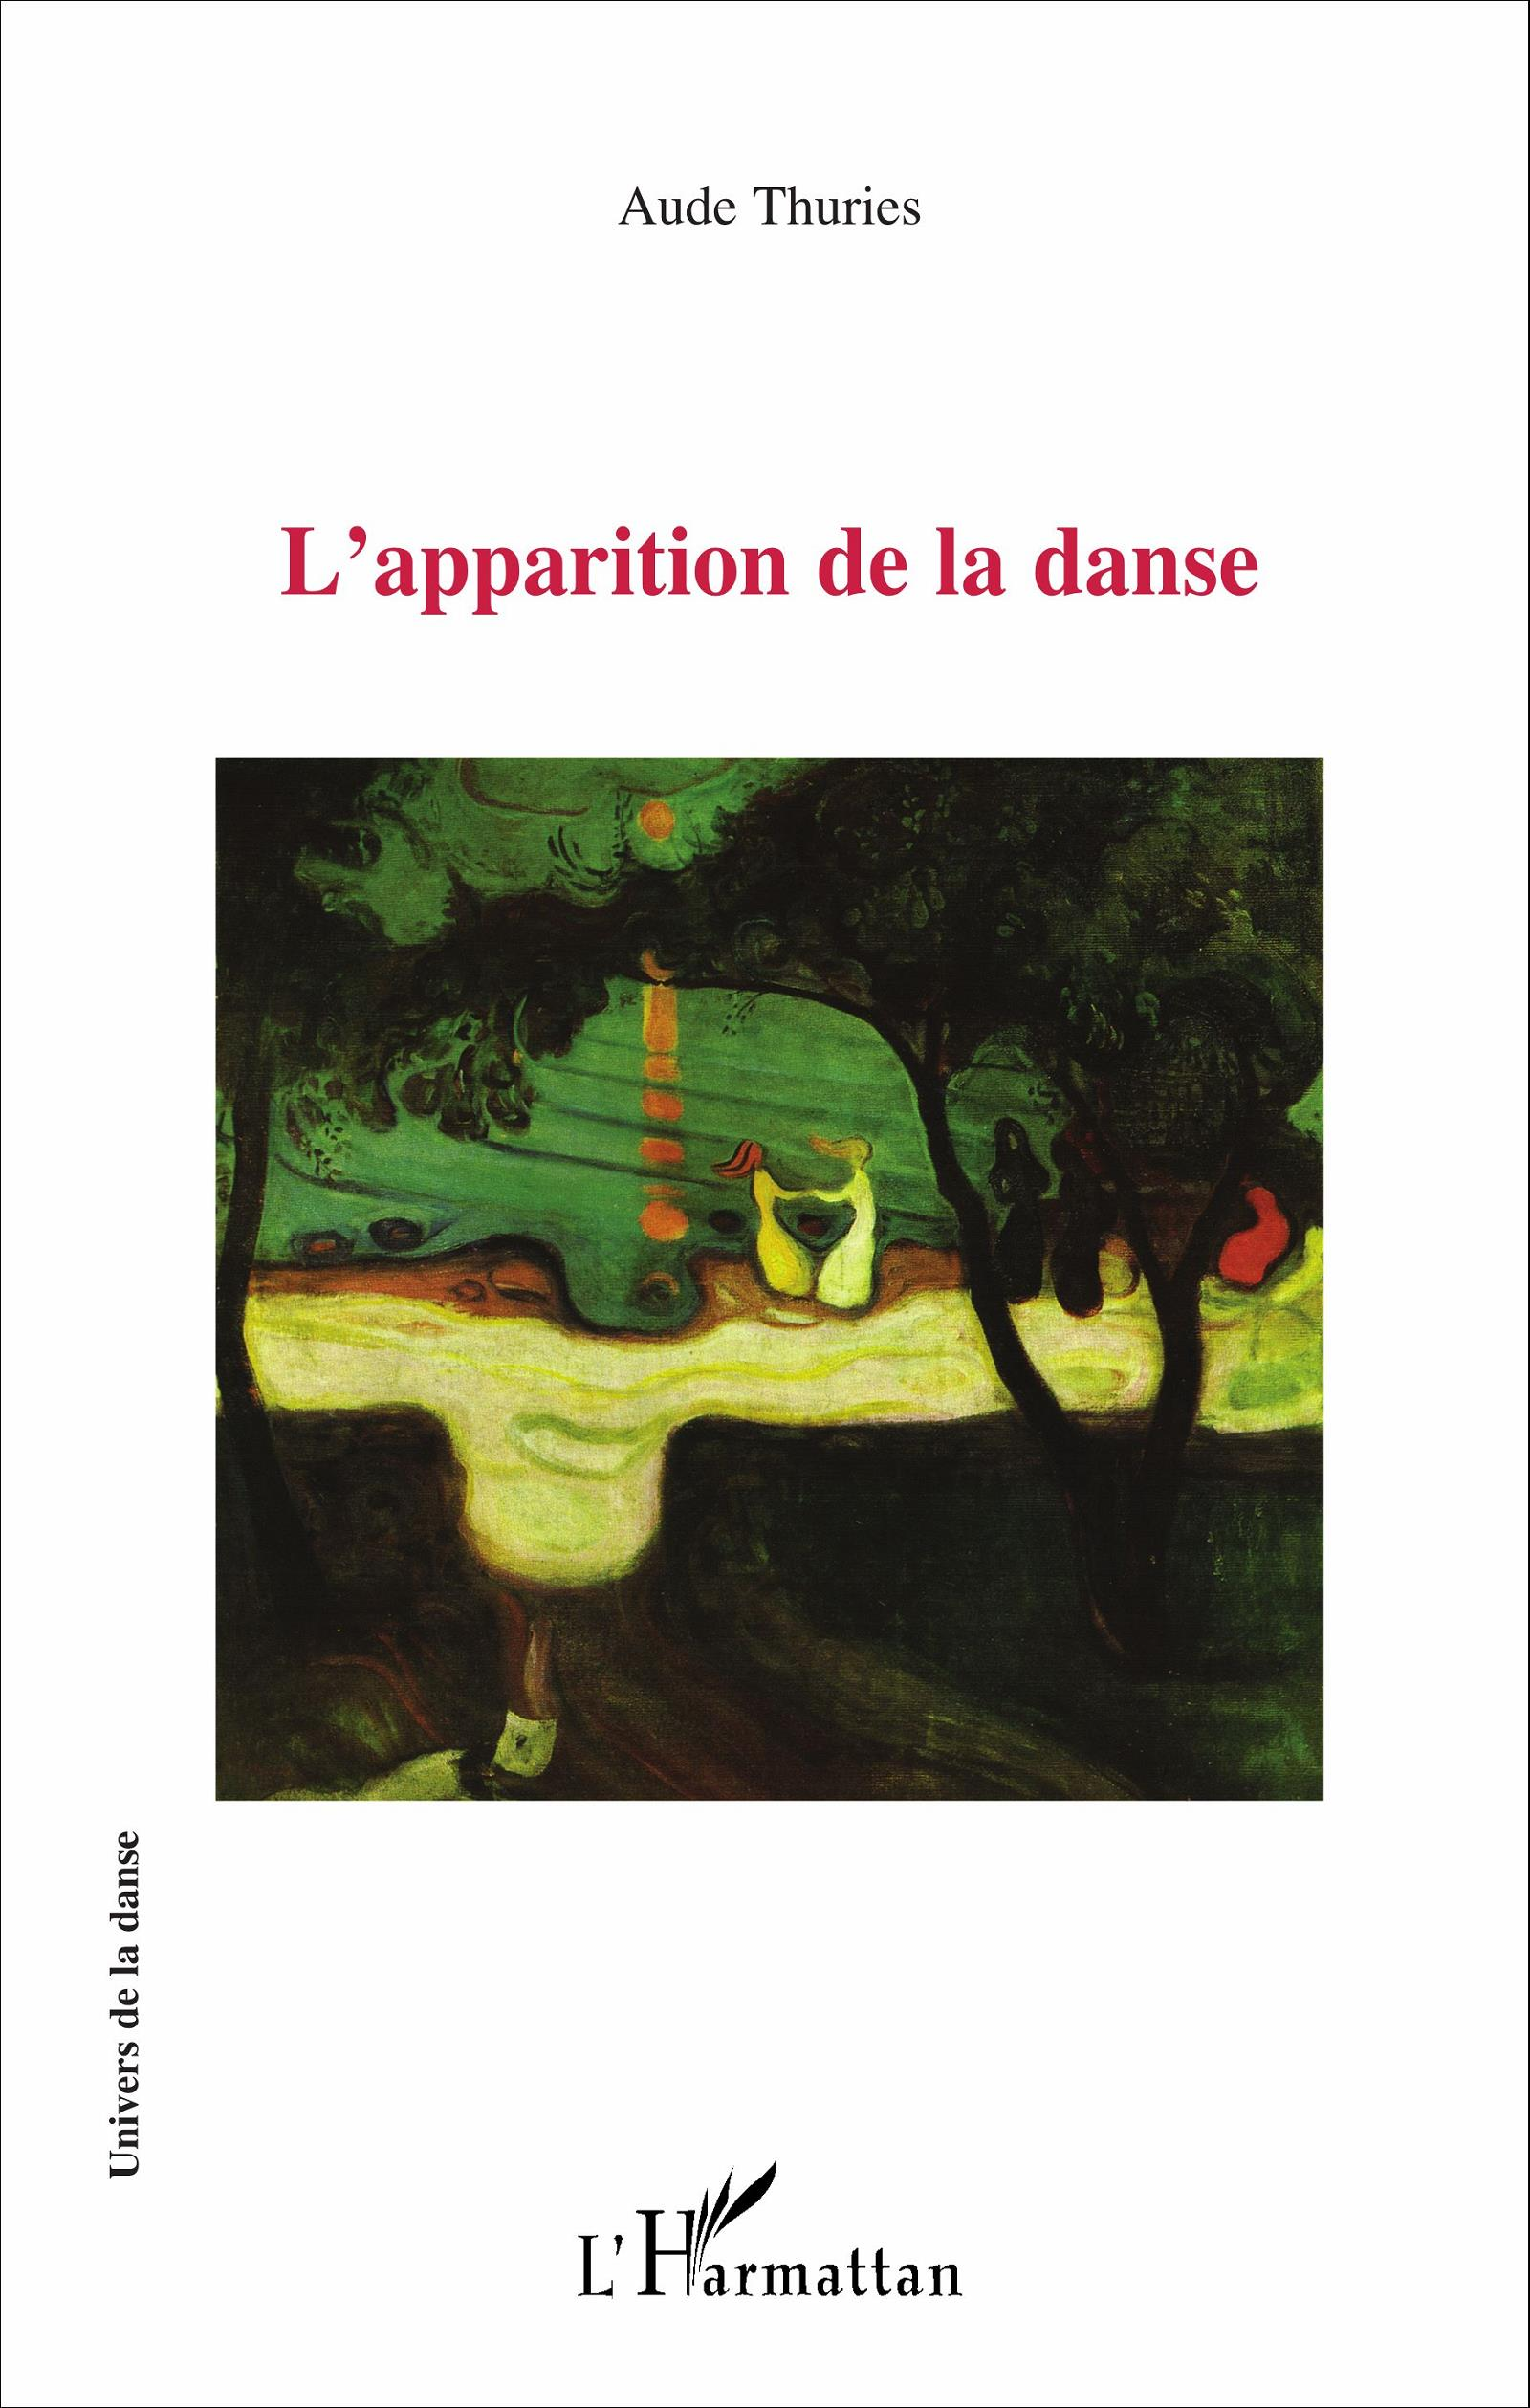 L'apparition de la danse